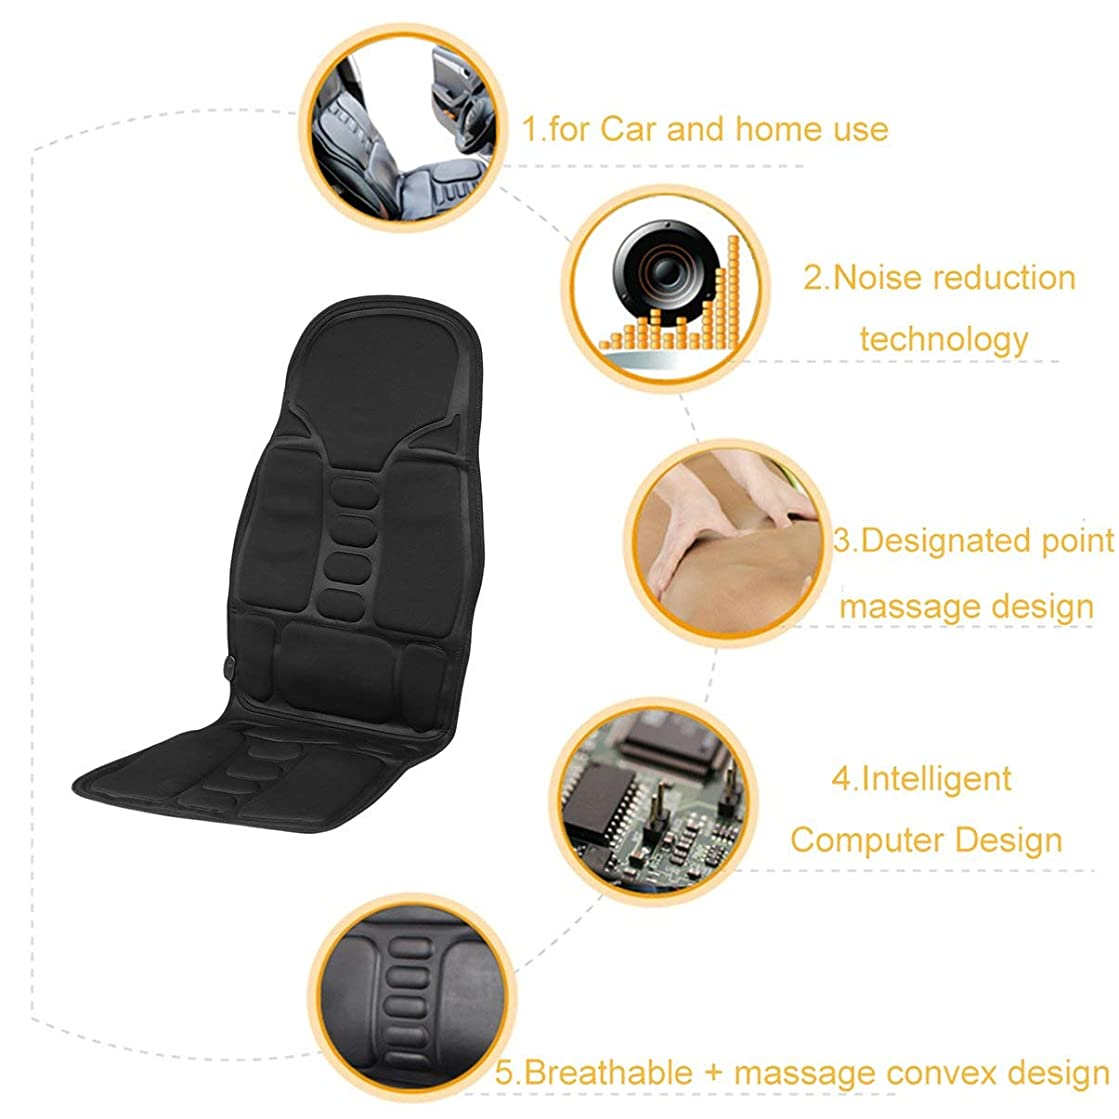 酸化する盲信時折Professional Car Household Office Full Body Massage Cushion Lumbar Heat Vibration Neck Back Massage Cushion Seat